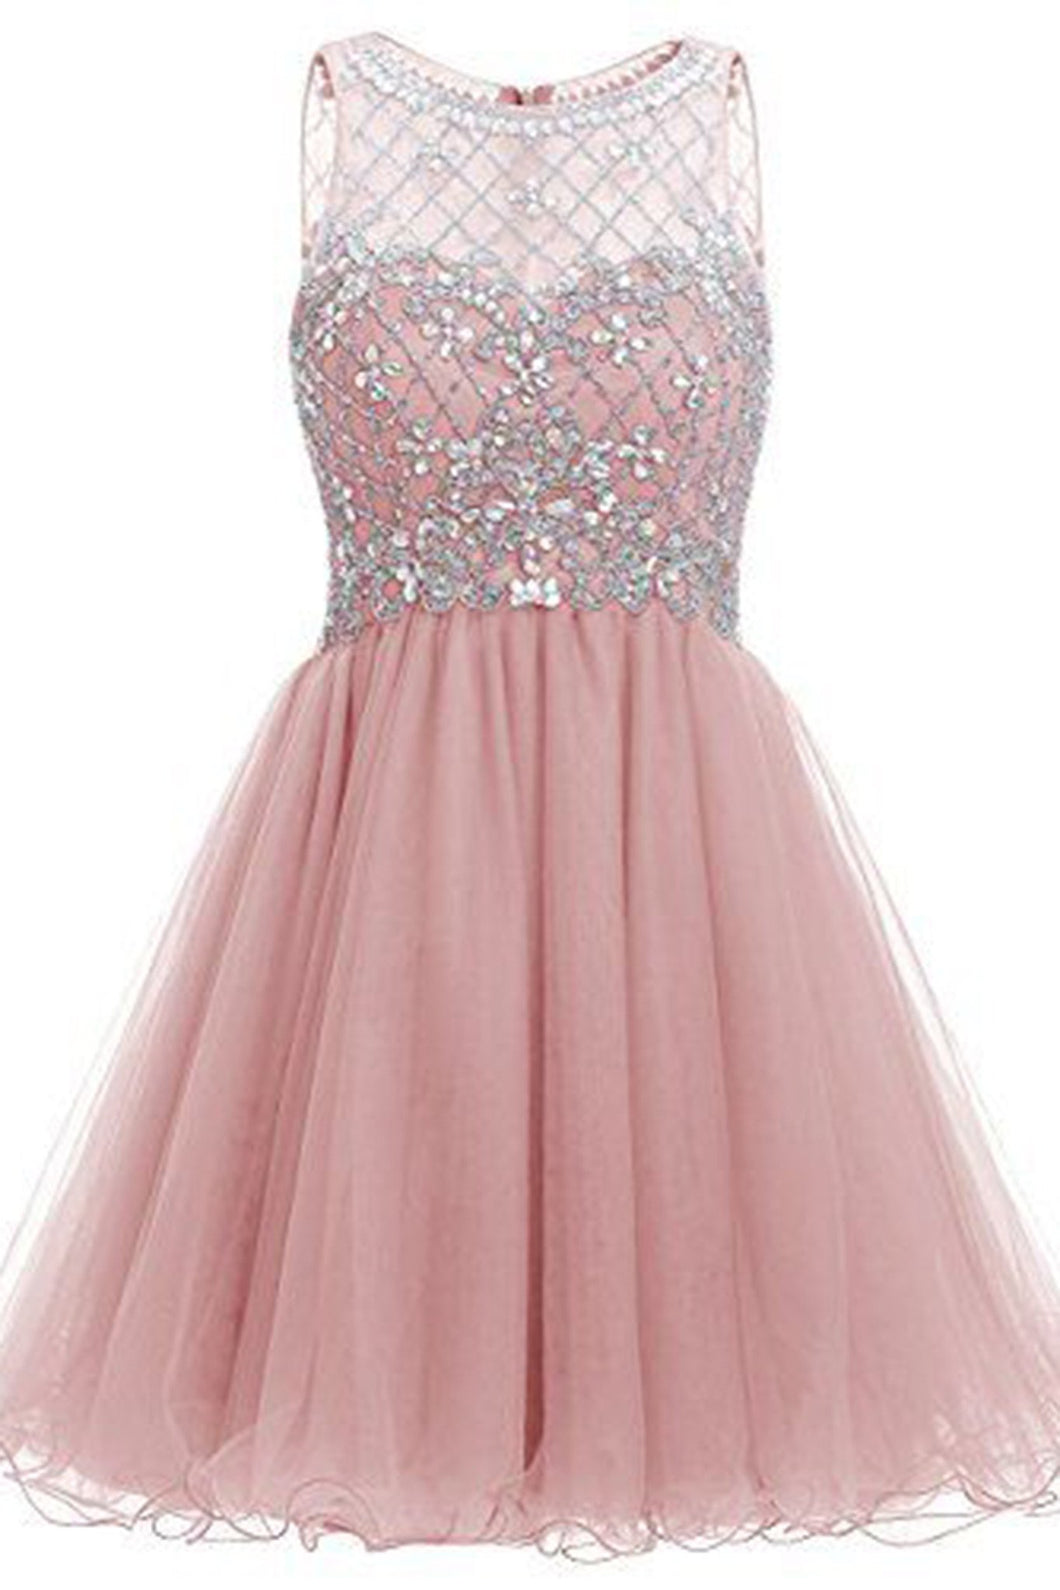 Sweet 16 Dresses | Pink organza sequins beaded A-line round neck see-through short dresses for teens